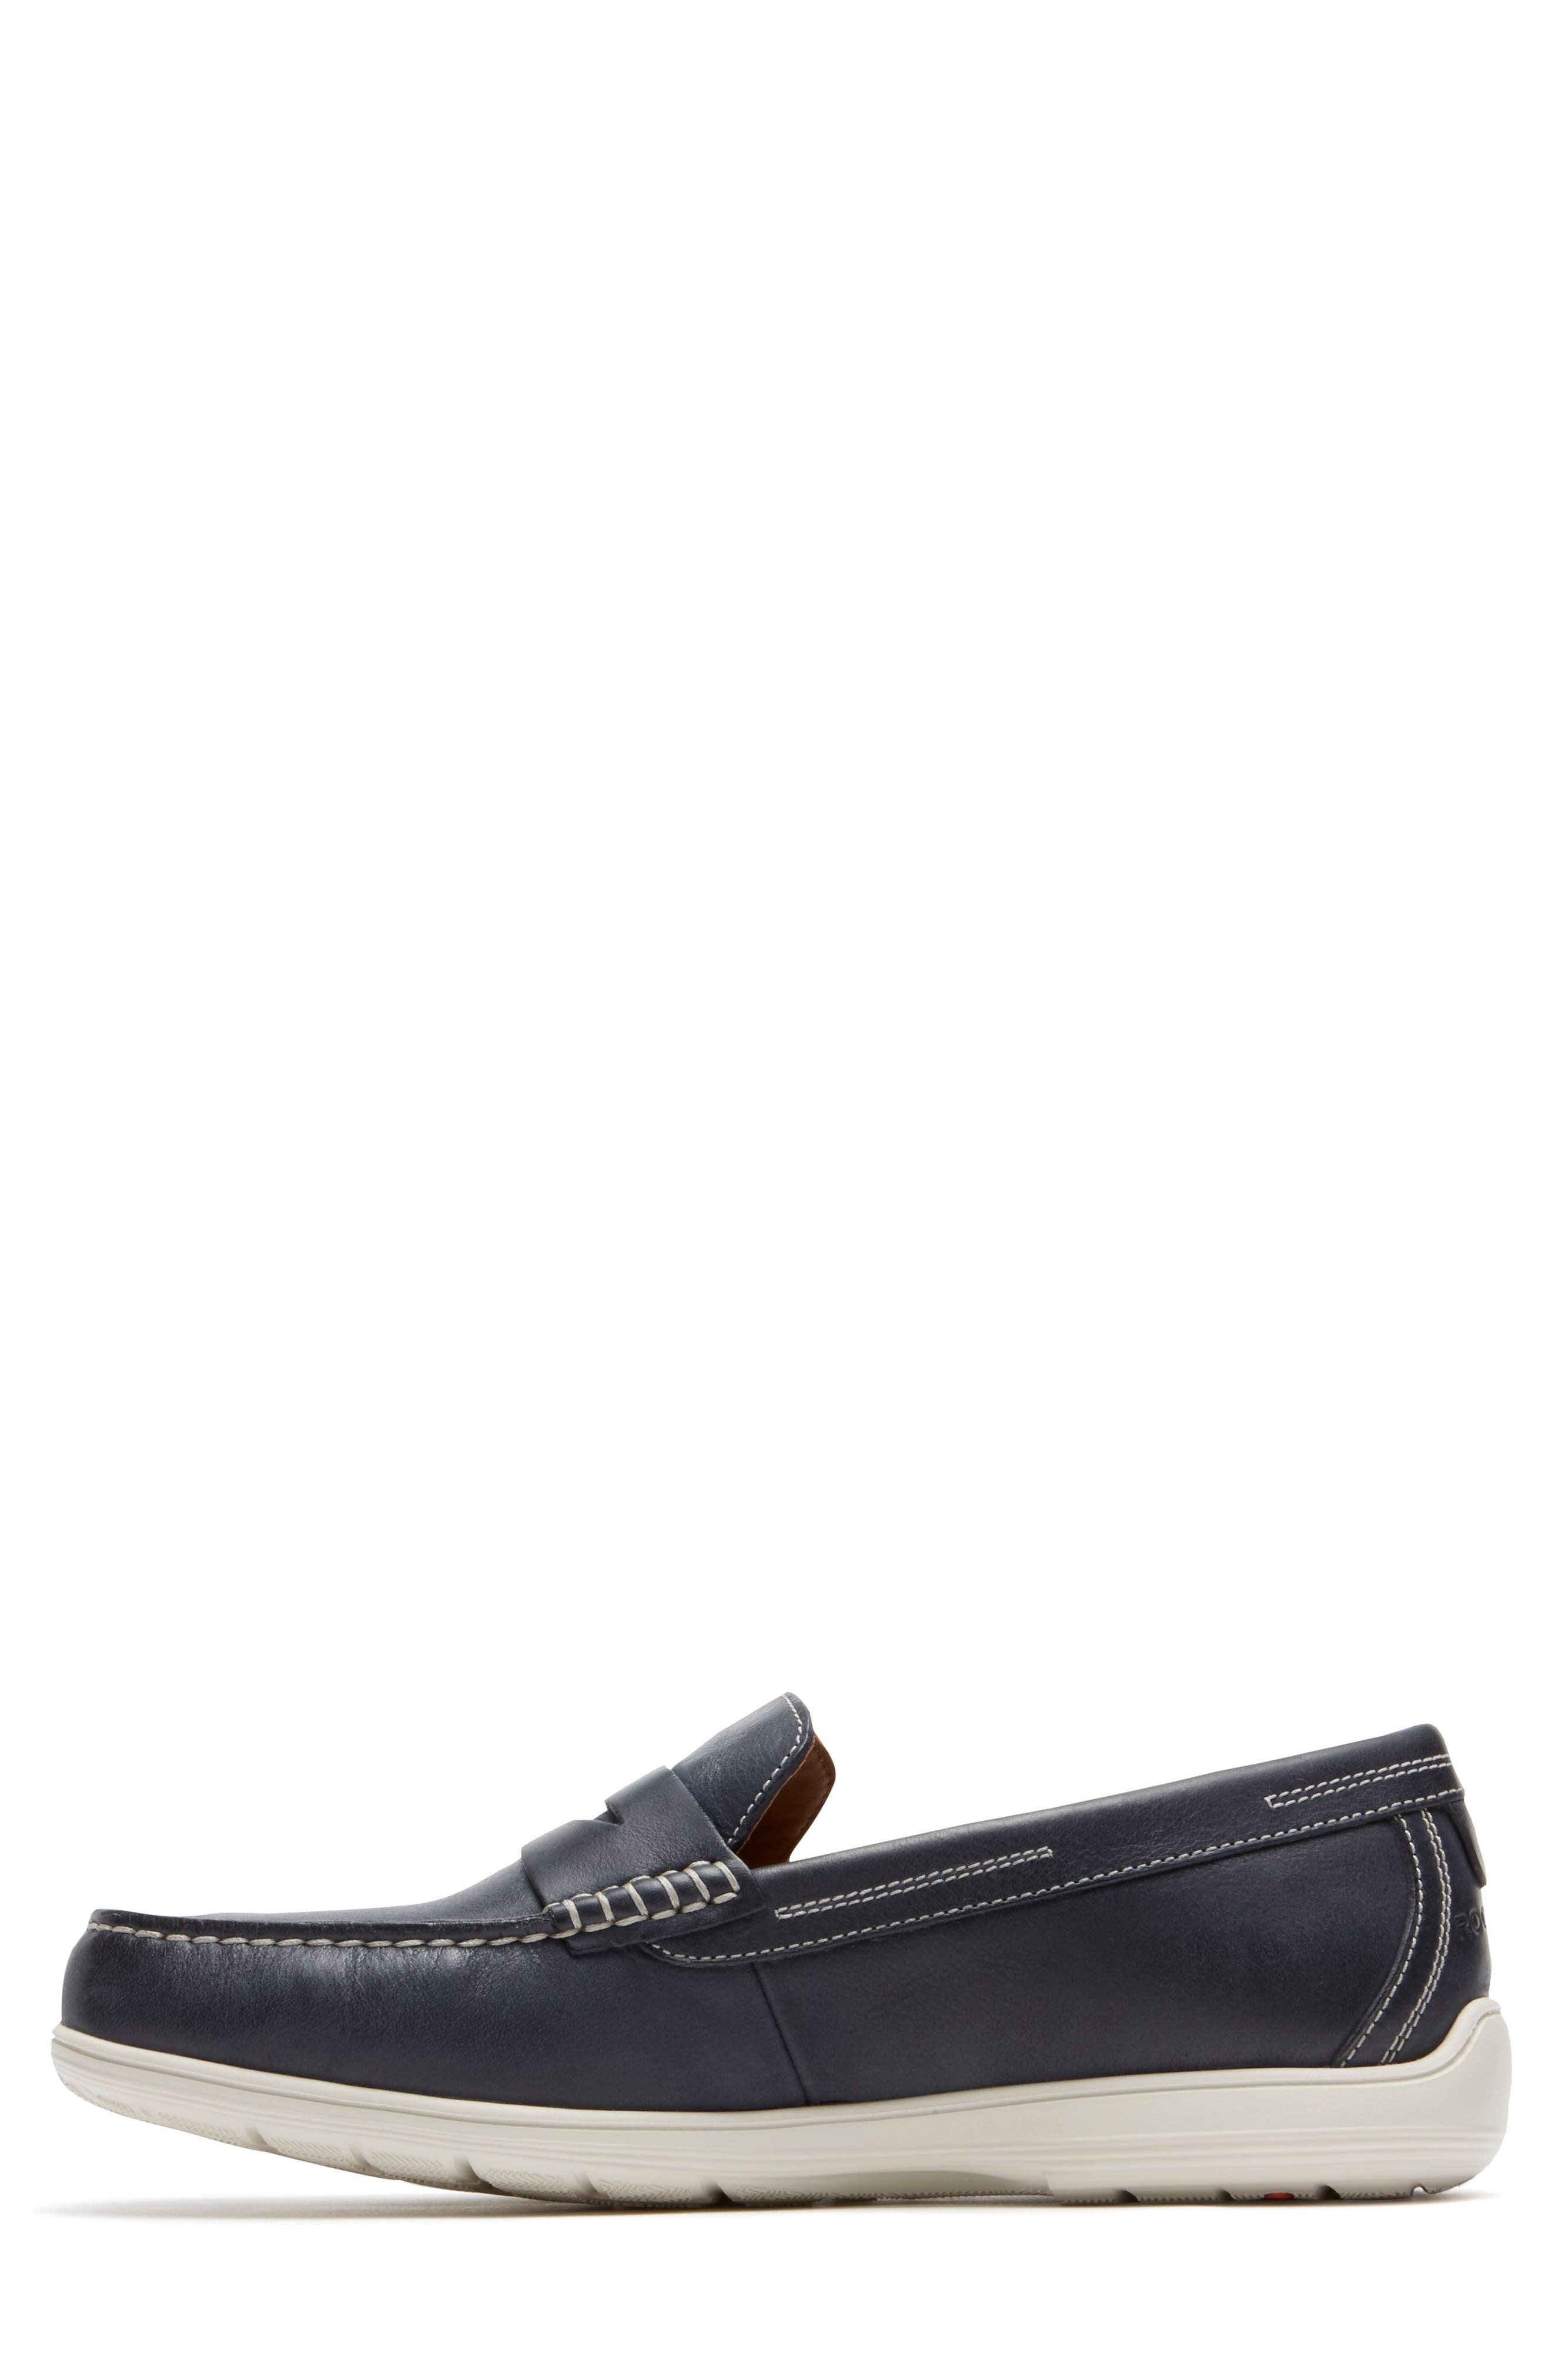 Total Motion Penny Loafer,                             Alternate thumbnail 6, color,